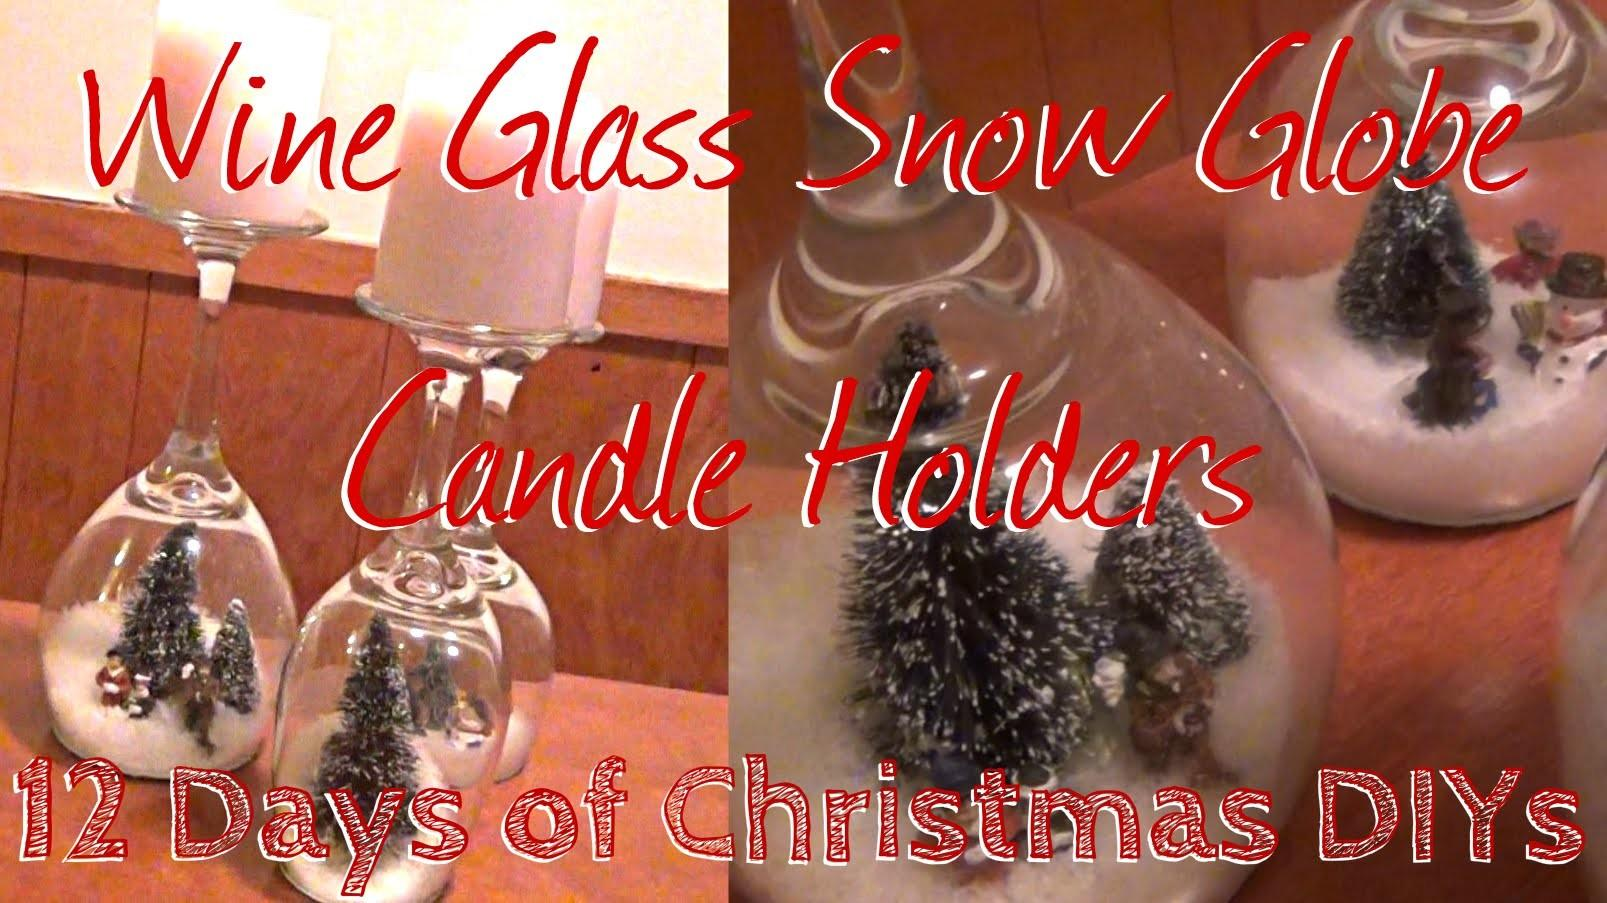 Wine Glass Snow Globe Candle Holders Days